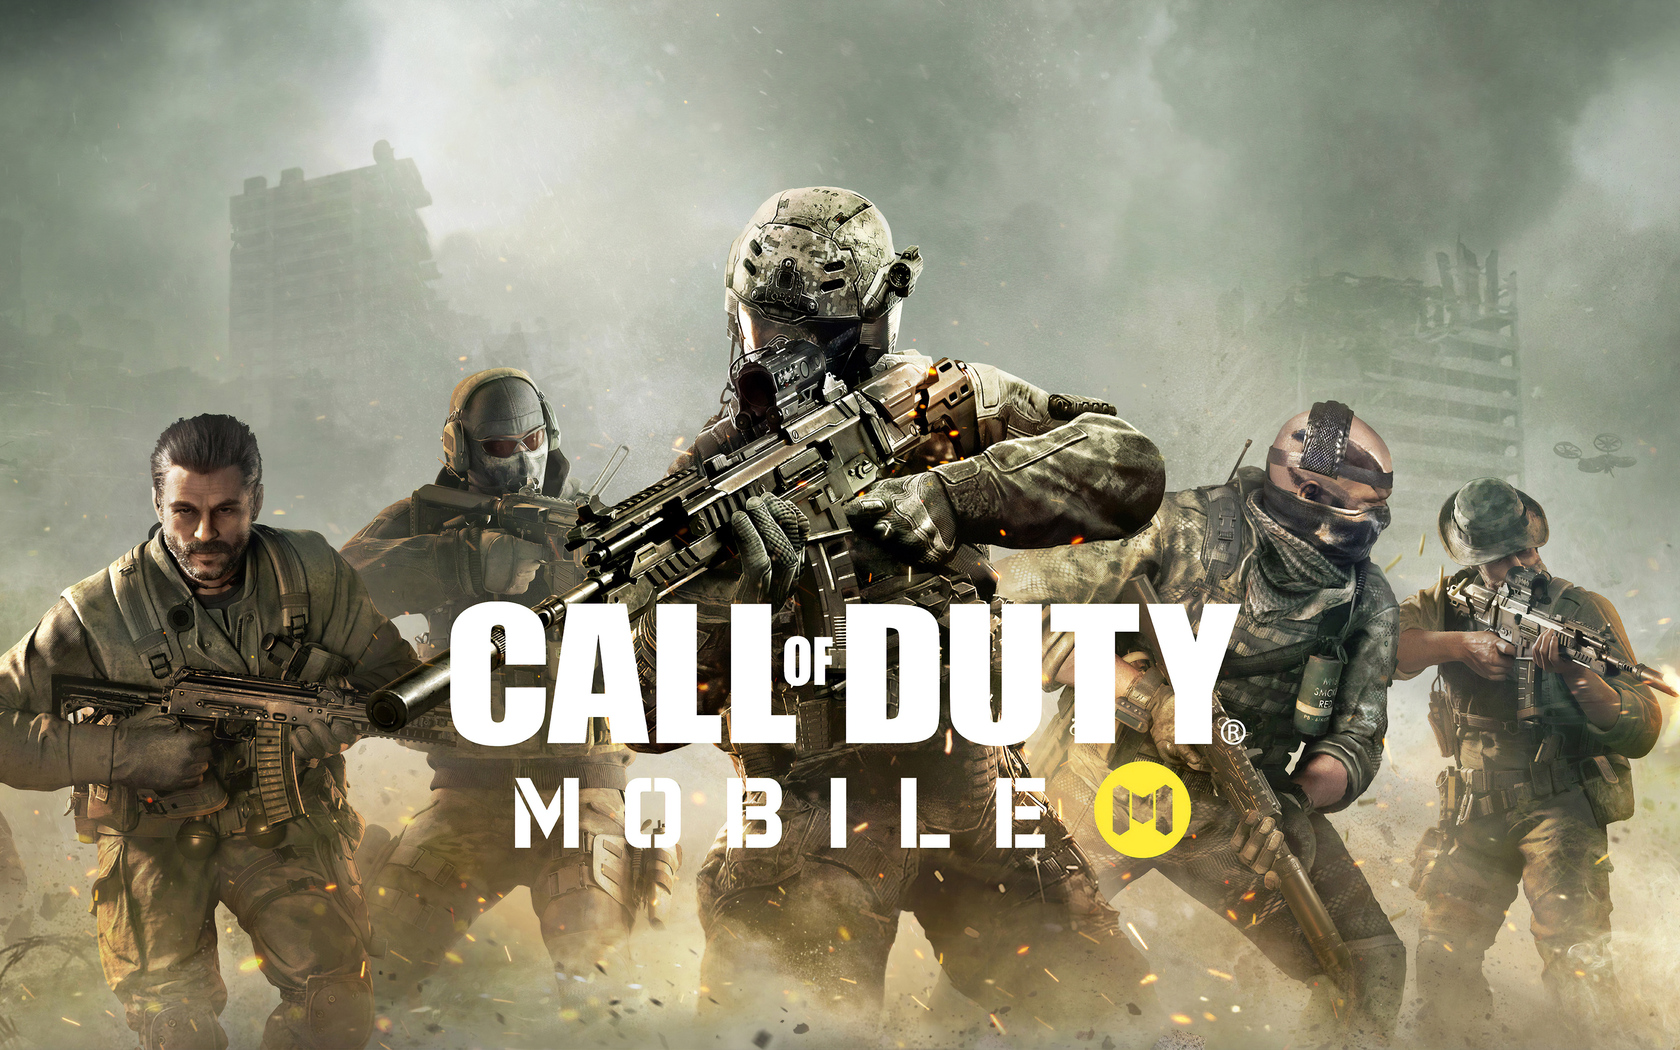 call-of-duty-mobile-50.jpg